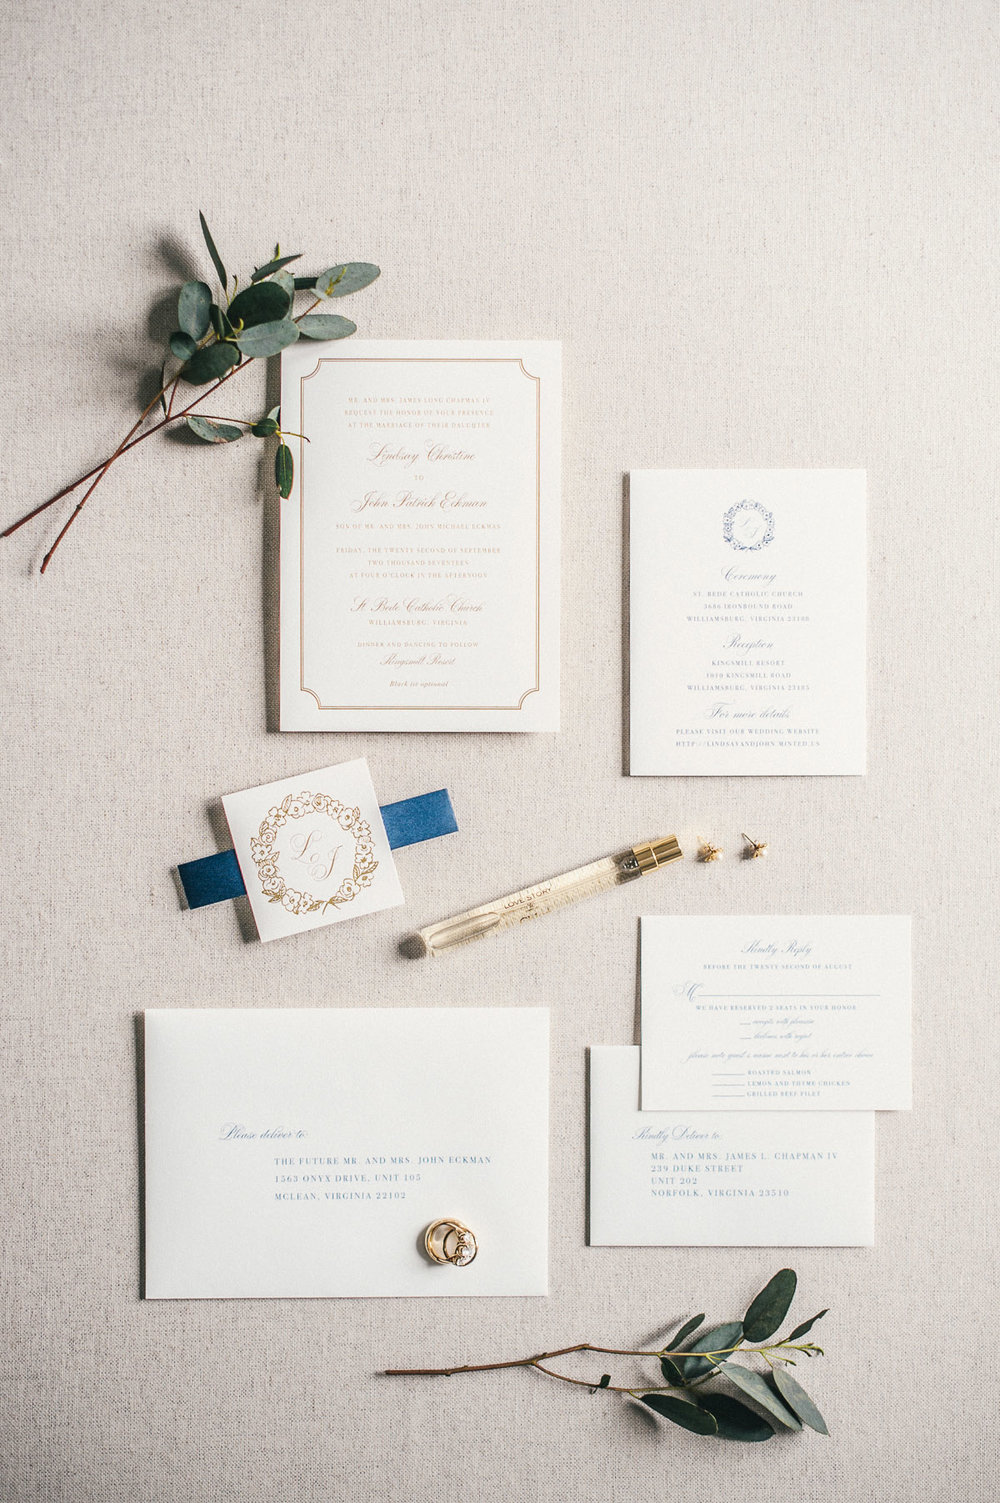 Custom-Monogram-Wedding-Invitations-Third-Clover-Paper-Still55-Photography.jpg